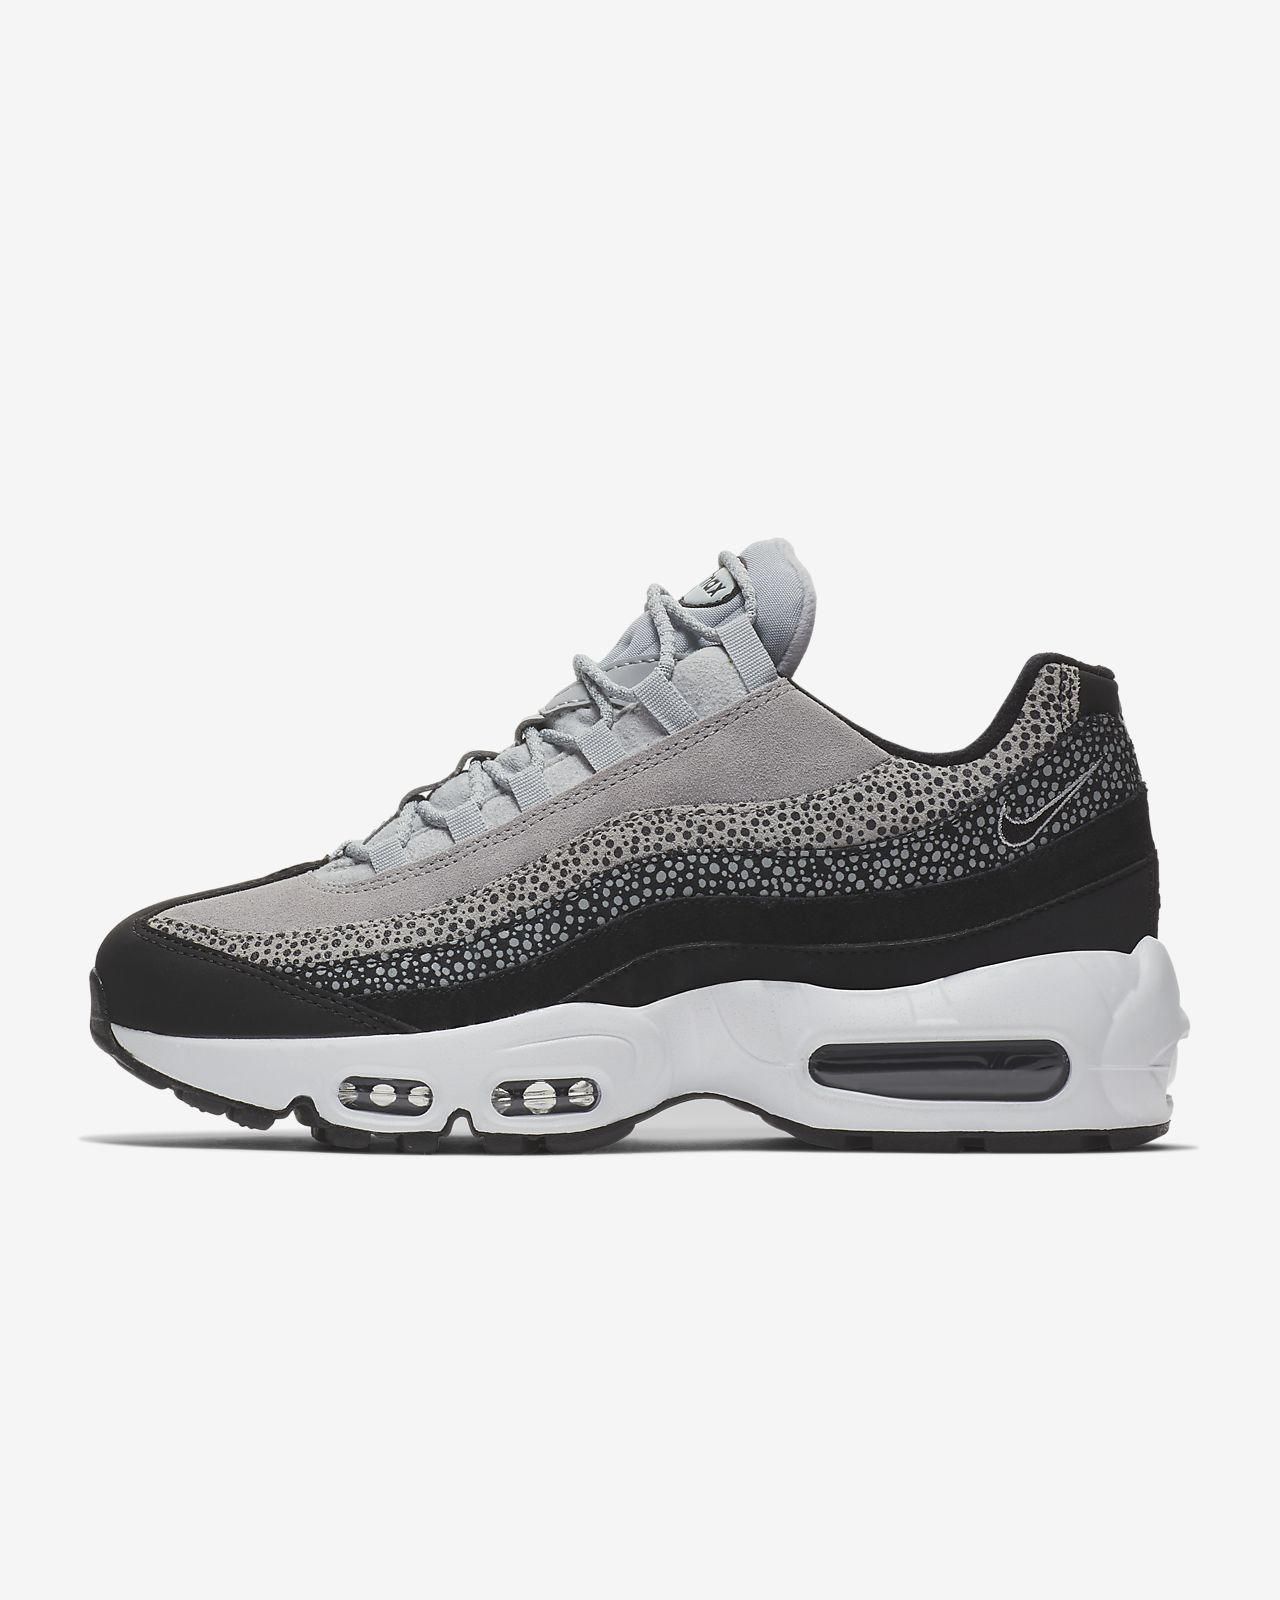 finest selection 72571 f6c4a ... discount code for nike air max 95 premium contrast damesko f3e7c 8999b  ...